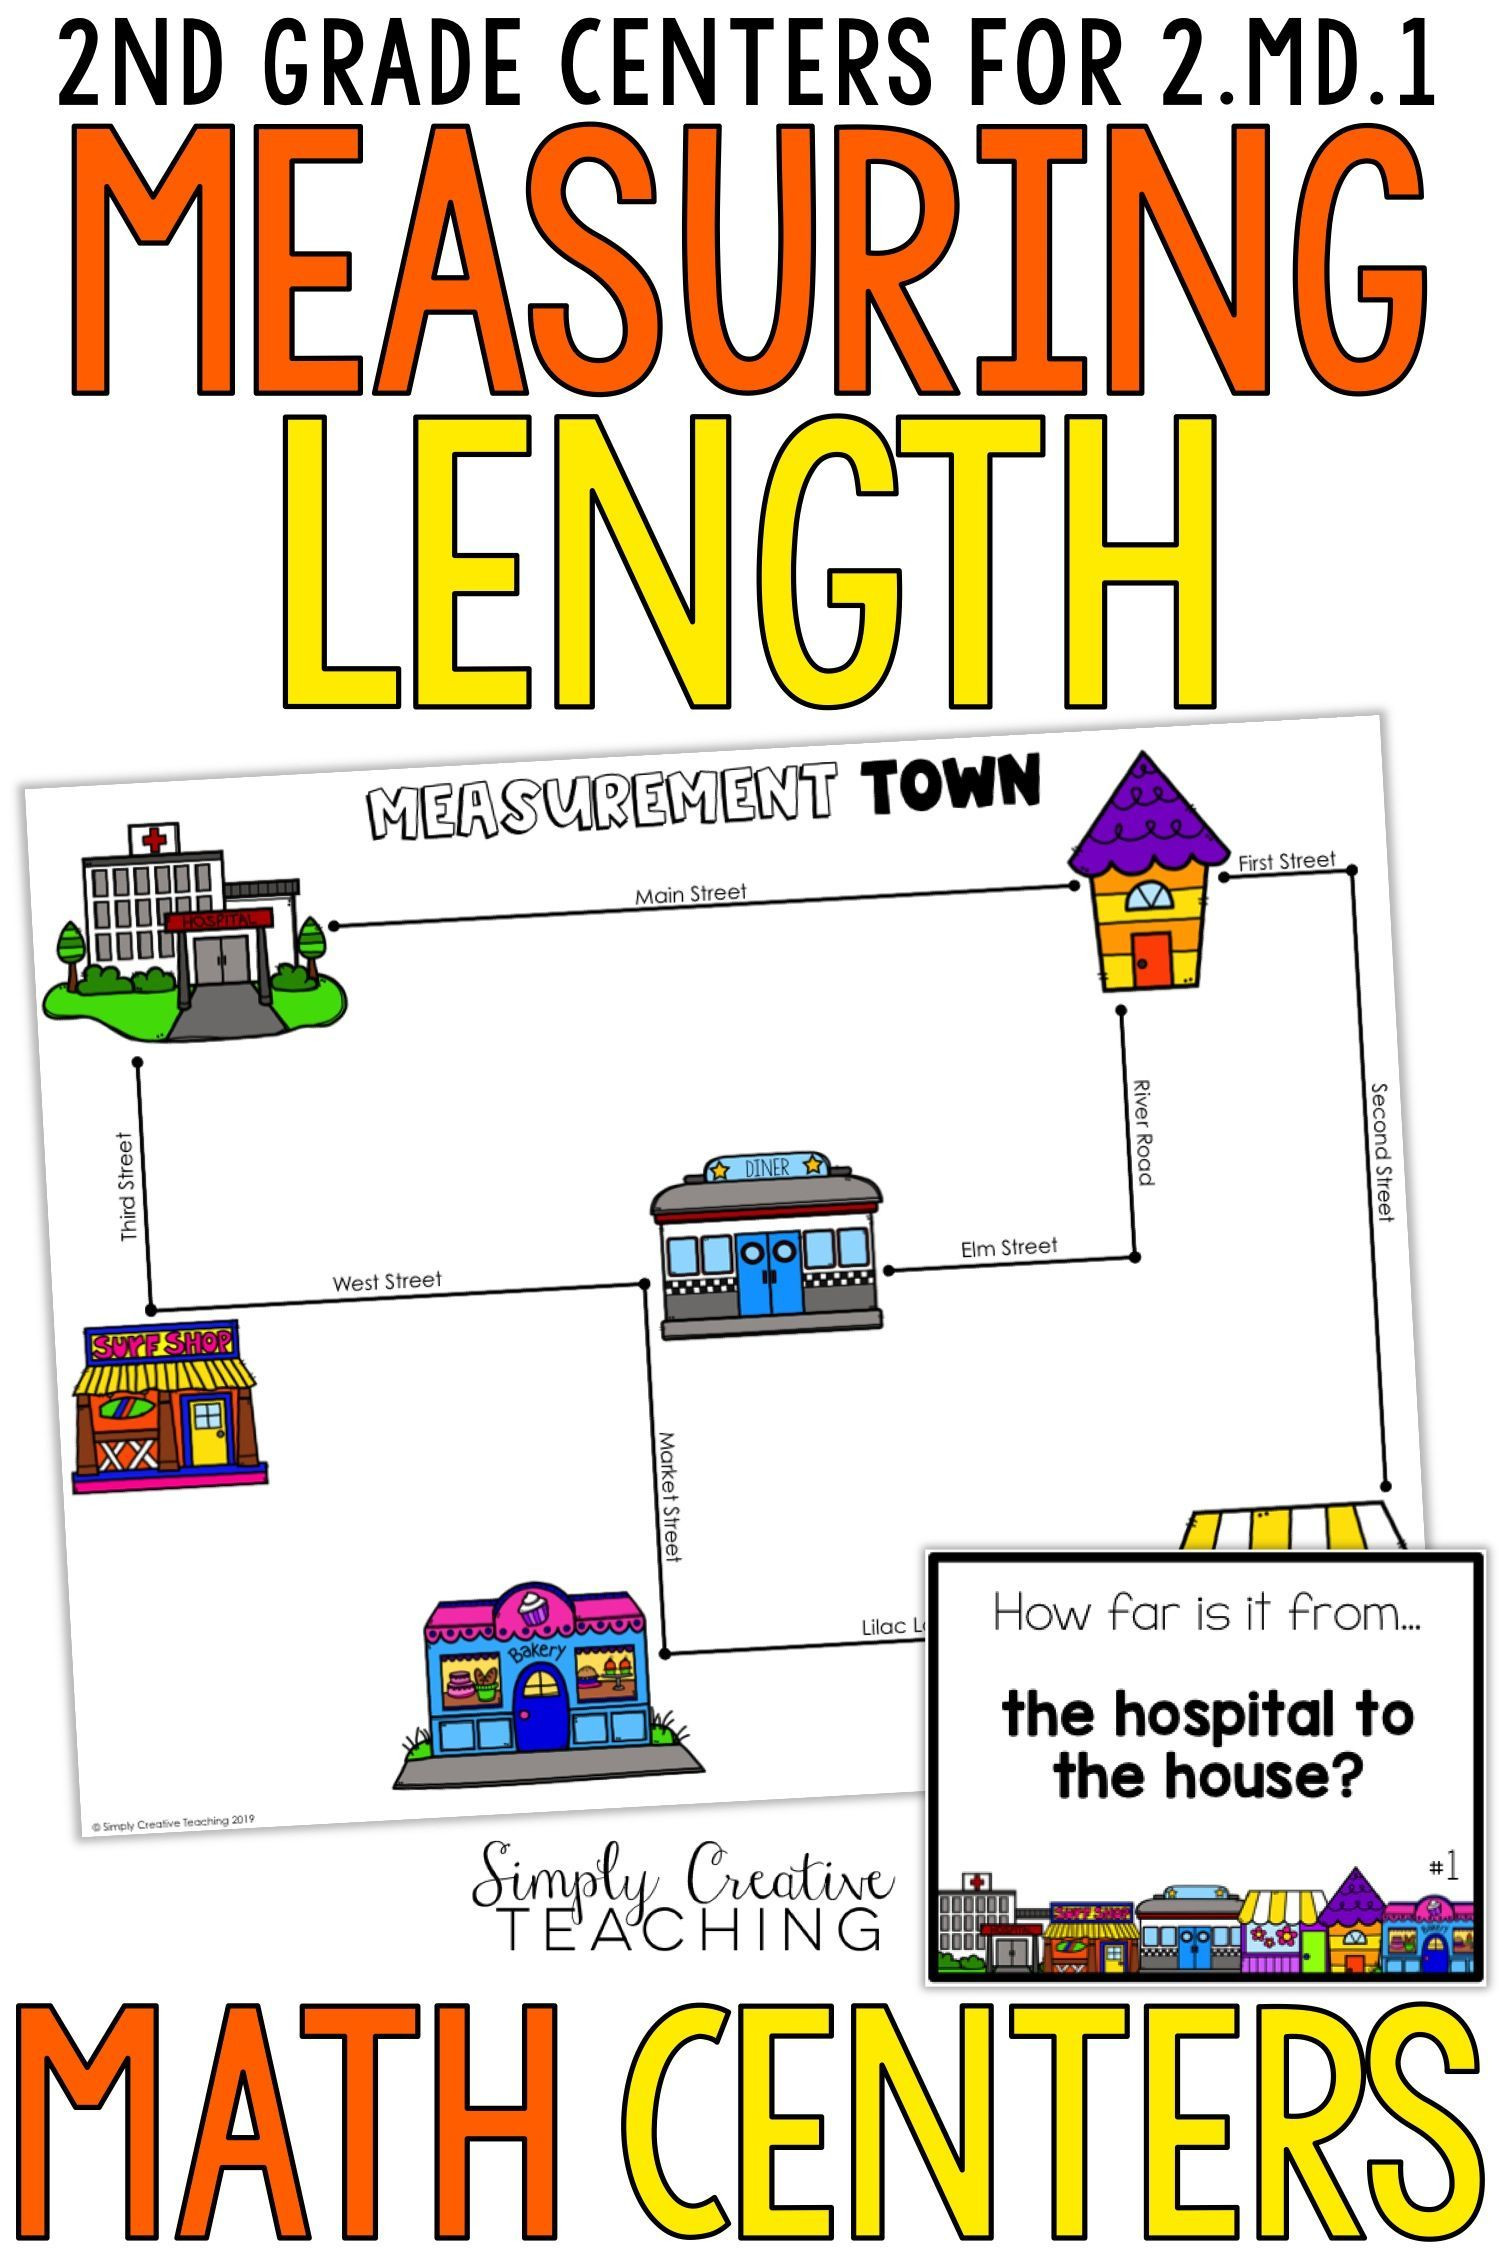 2nd Grade Measurement Worksheet 2nd Grade Measurement Centers for 2 Md 1